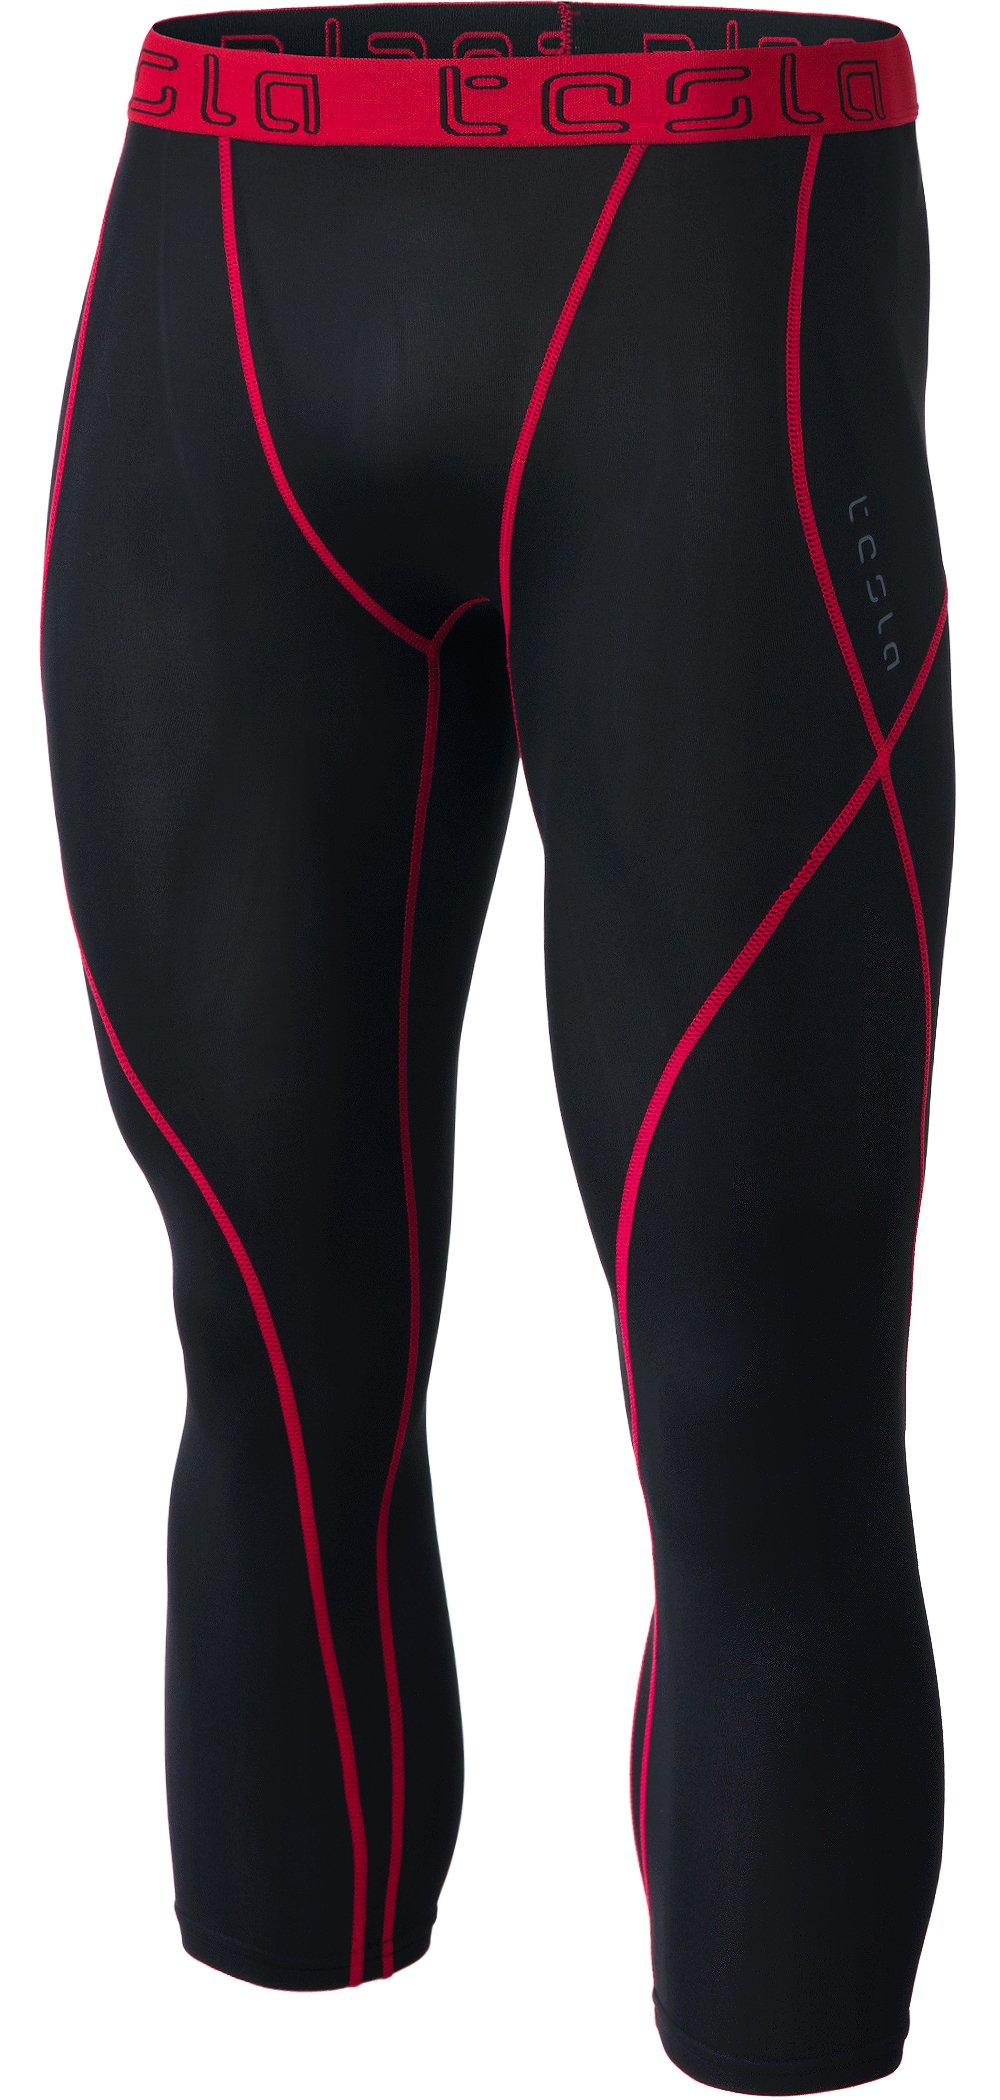 TSLA Men's Compression 3/4 Capri Pants Baselayer Cool Dry Sports Running Yoga Tights, Atheltic(muc18) - Black & Red, Small by TSLA